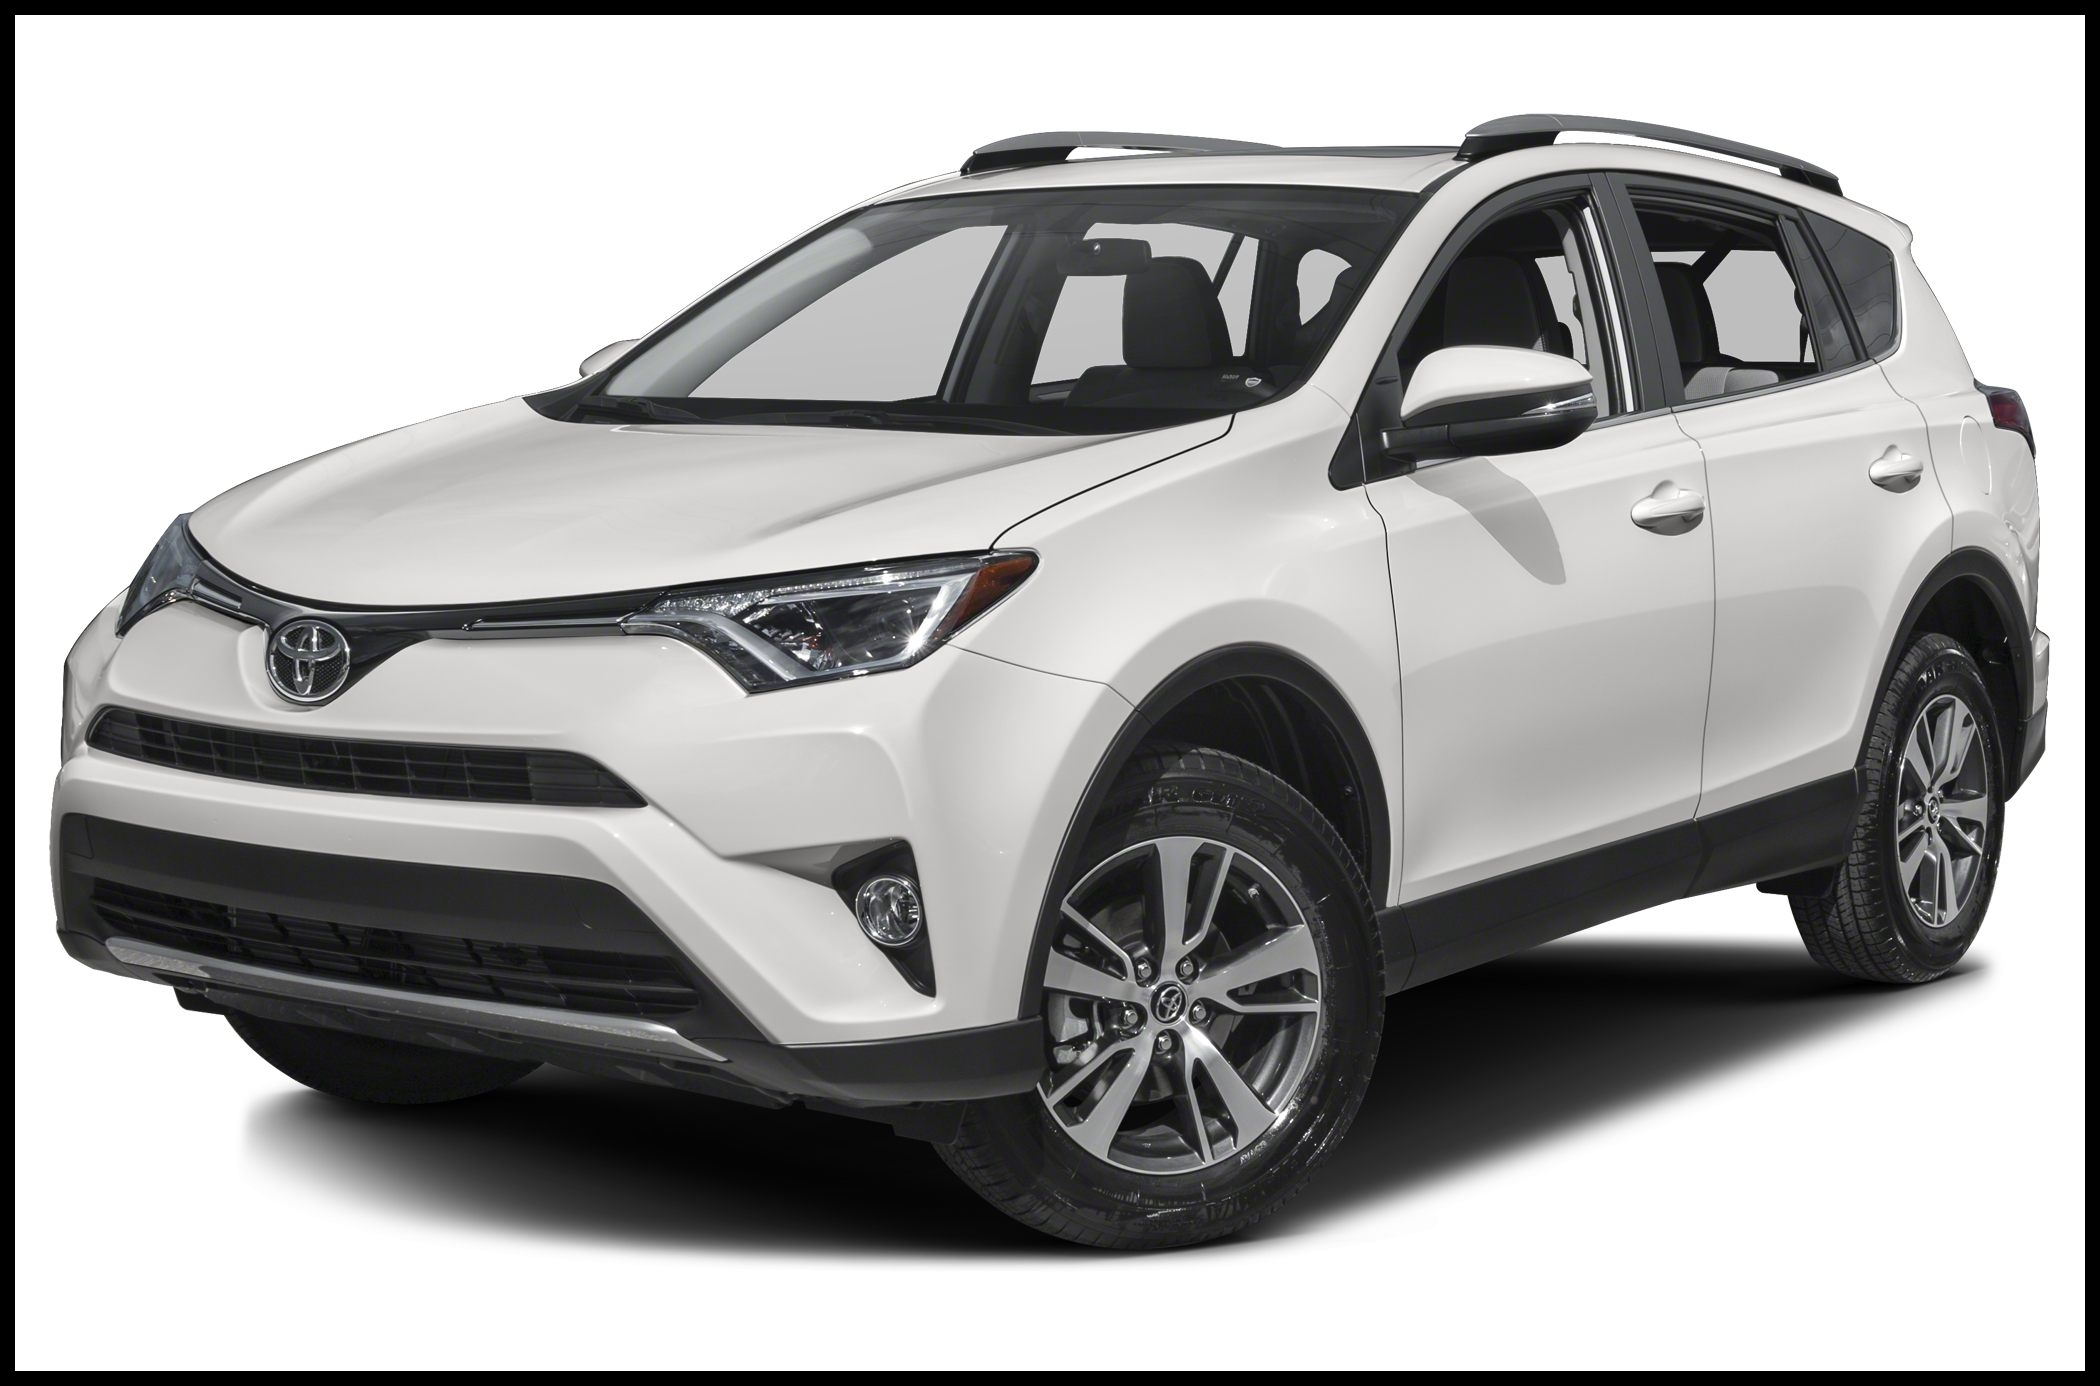 Usc60tos111b 2018 Toyota Rav4 Seating Capacity Dimensions Find Information On The